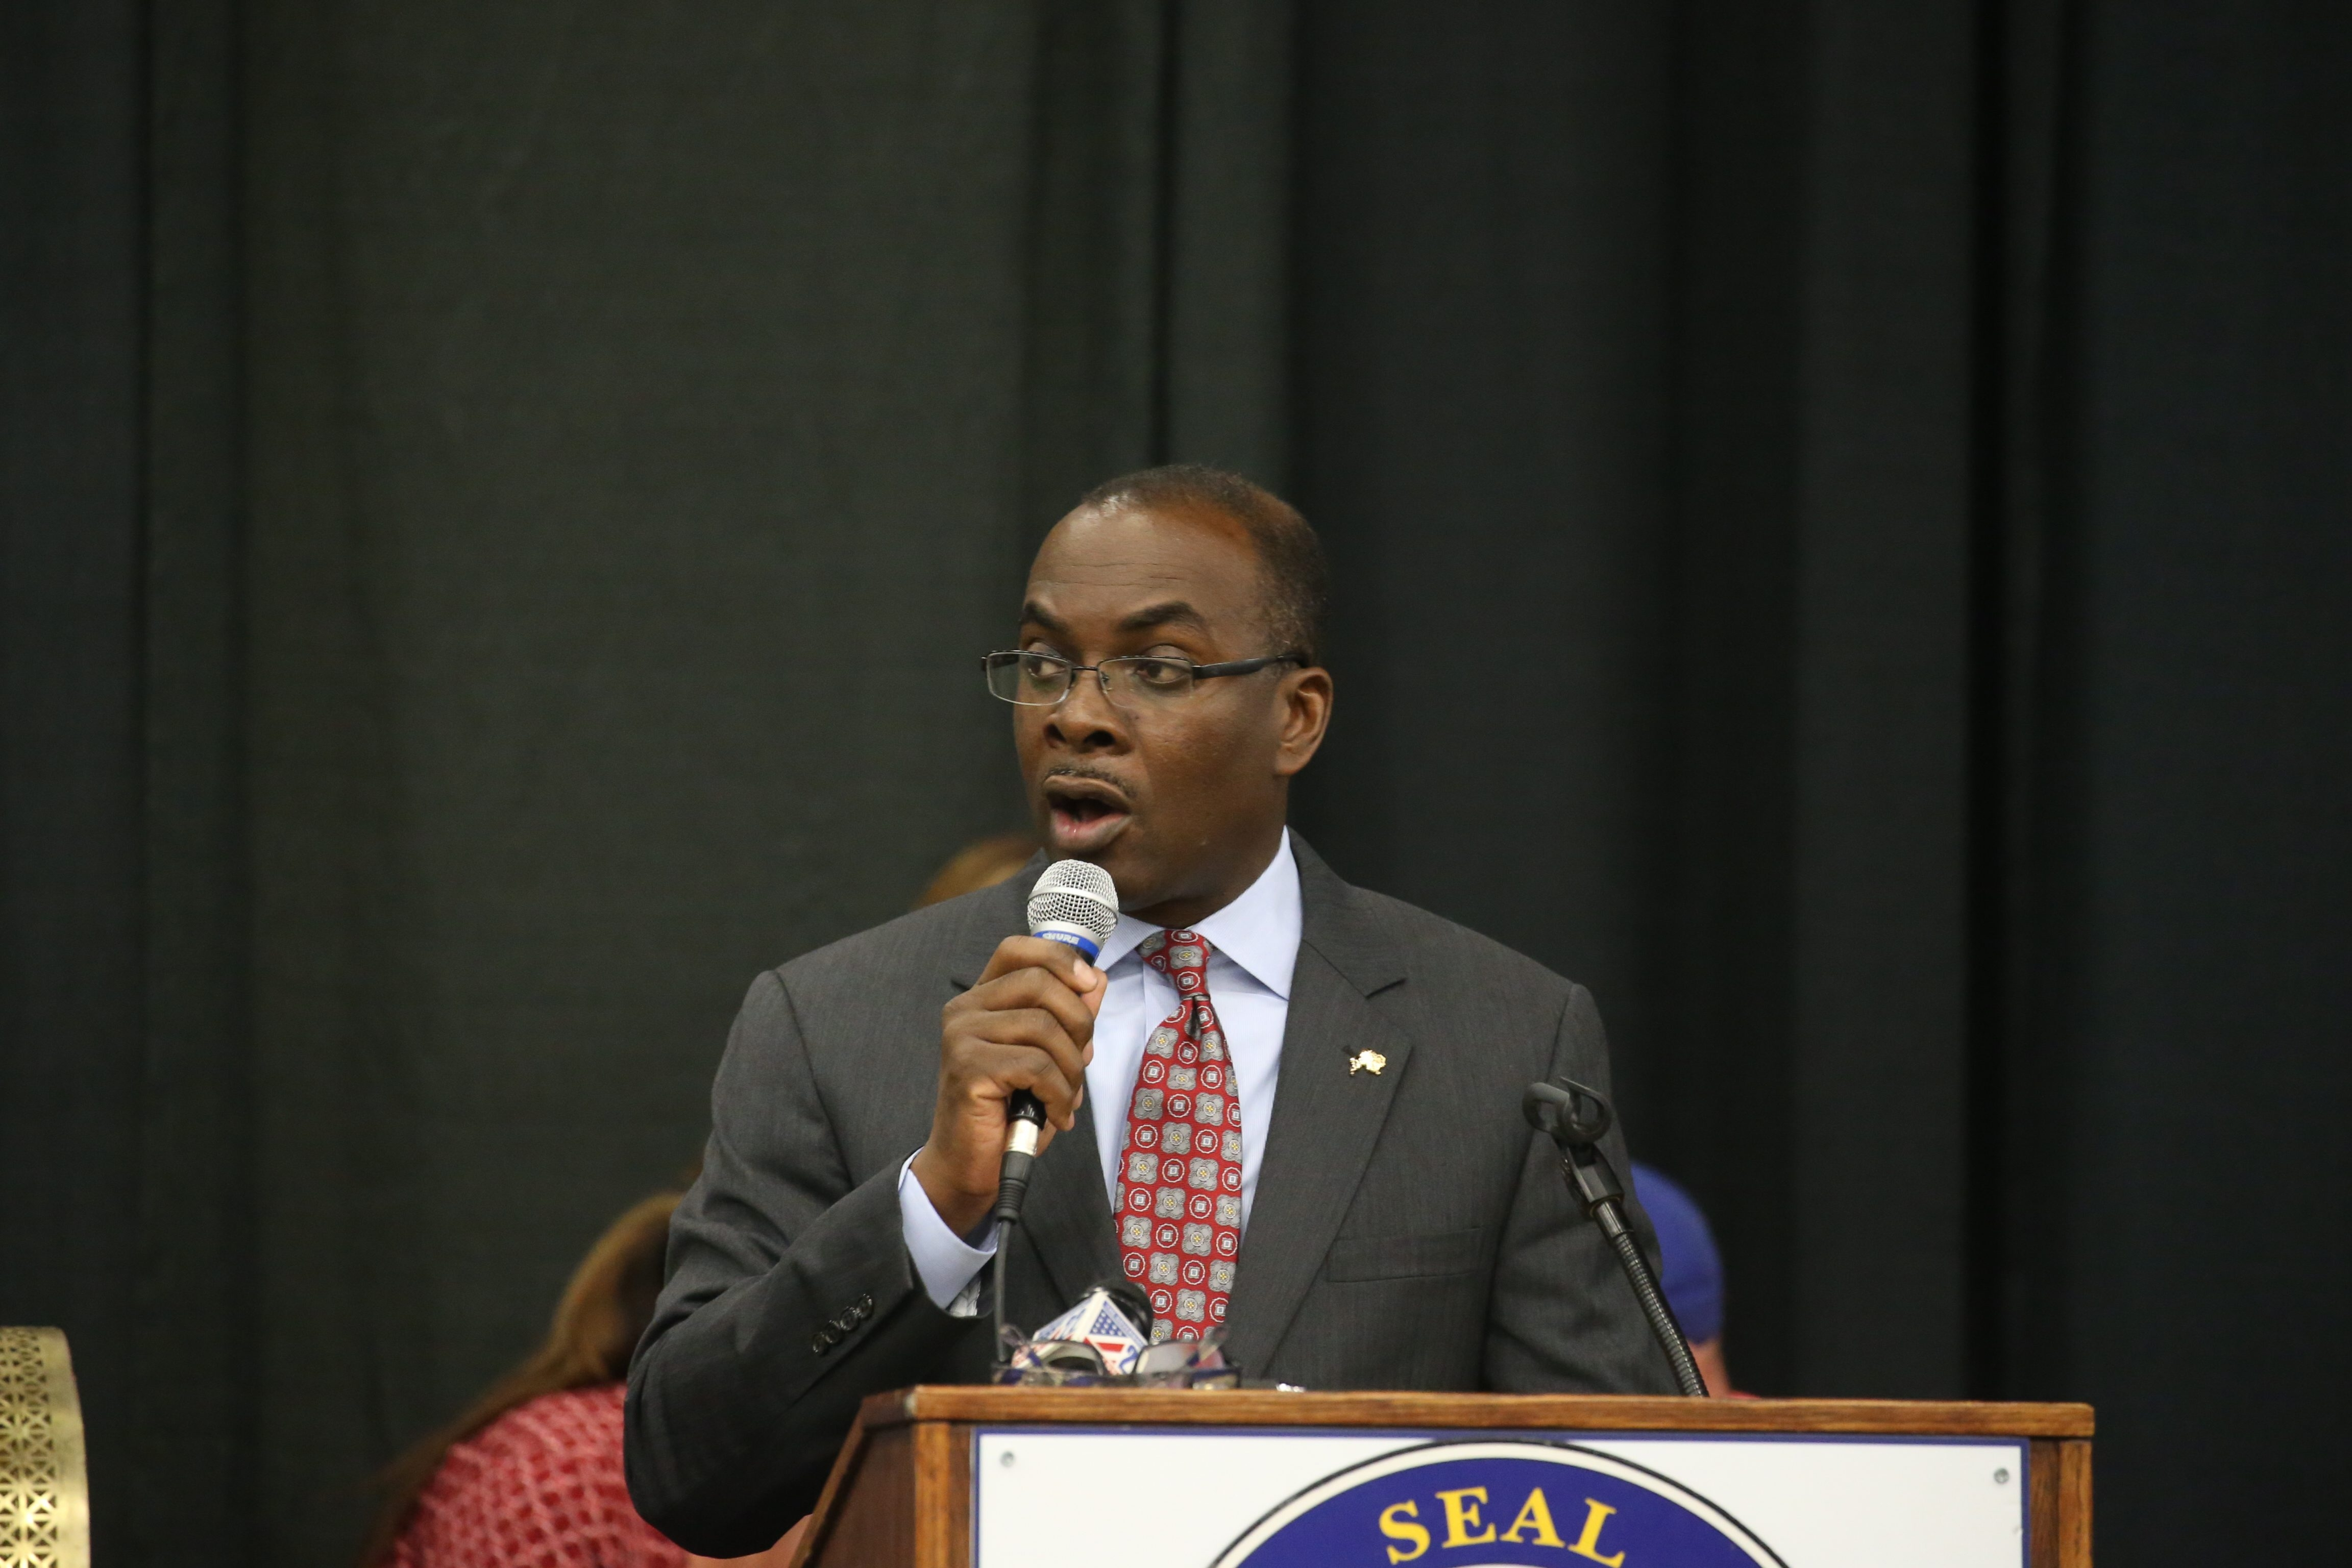 Mayor Byron Brown said in last year's State of the City address that property taxes would be frozen and they were. (John Hickey/Buffalo News file photo)